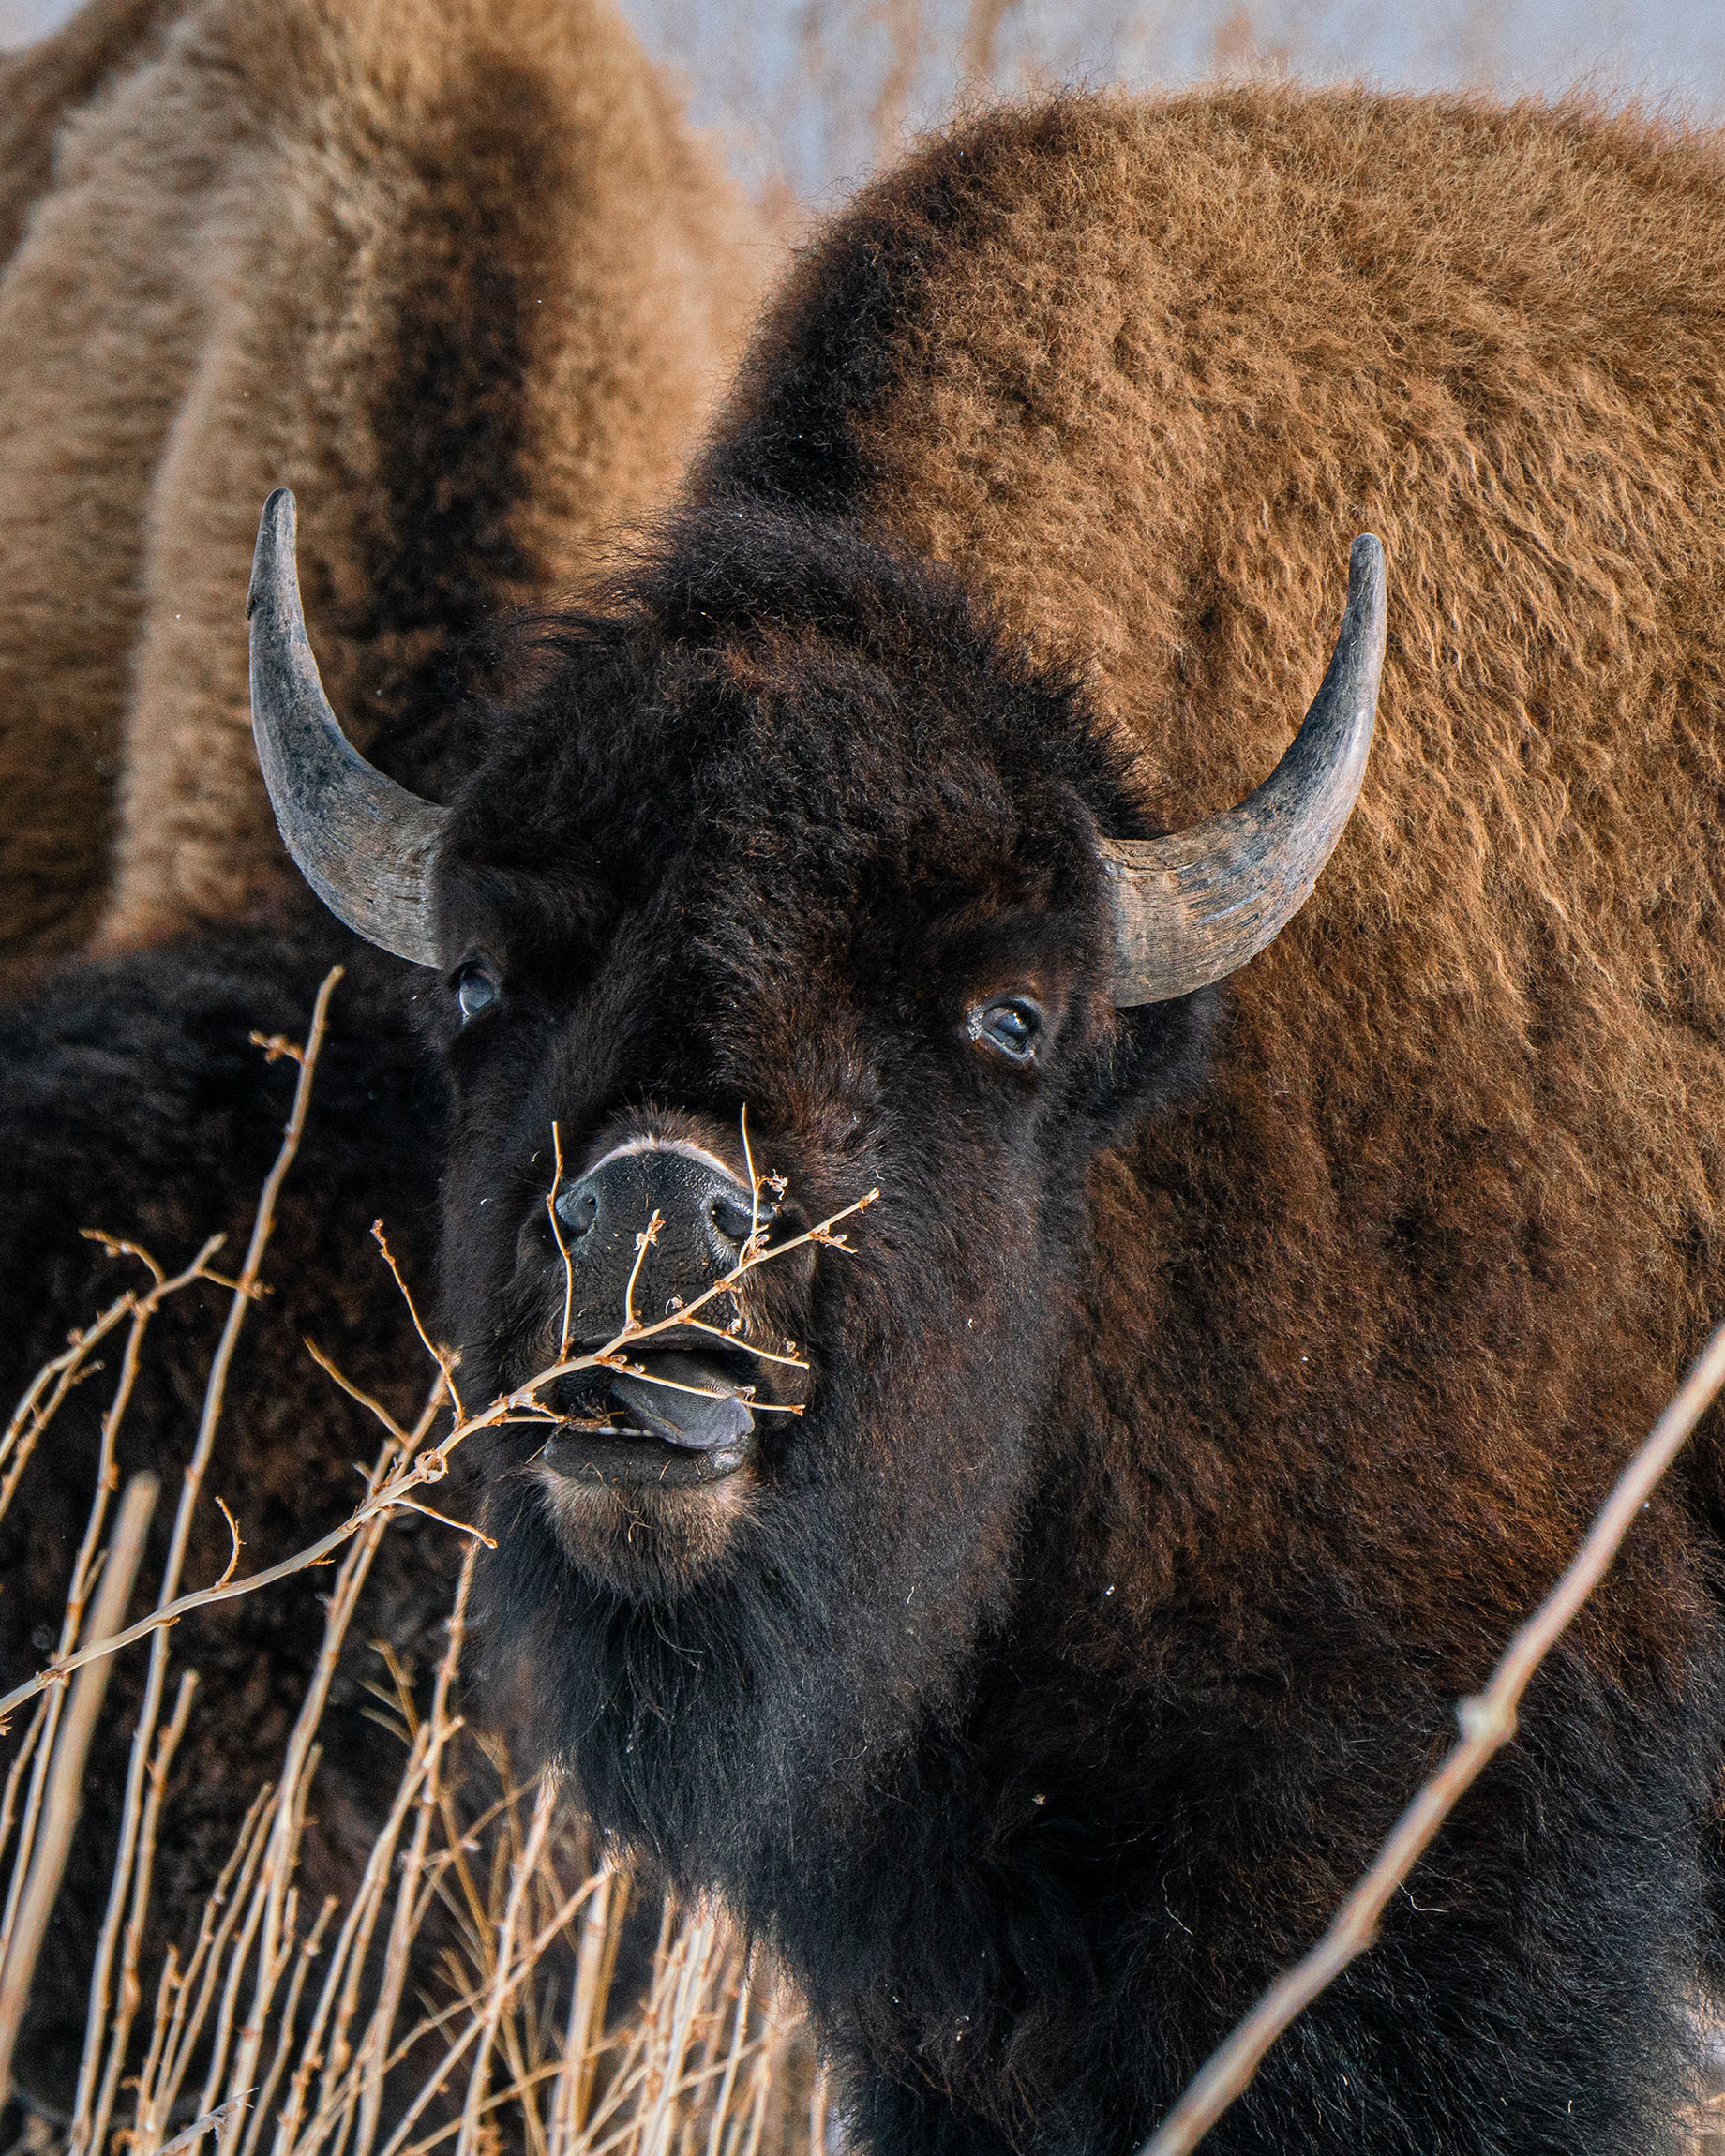 #bison, #buffalo, #feeding, #tongue, #action, #wildlife, #wildlifephotography, #sony, #outdoorphotography, #naturephotography, #nature, #wildthingsofwyoming